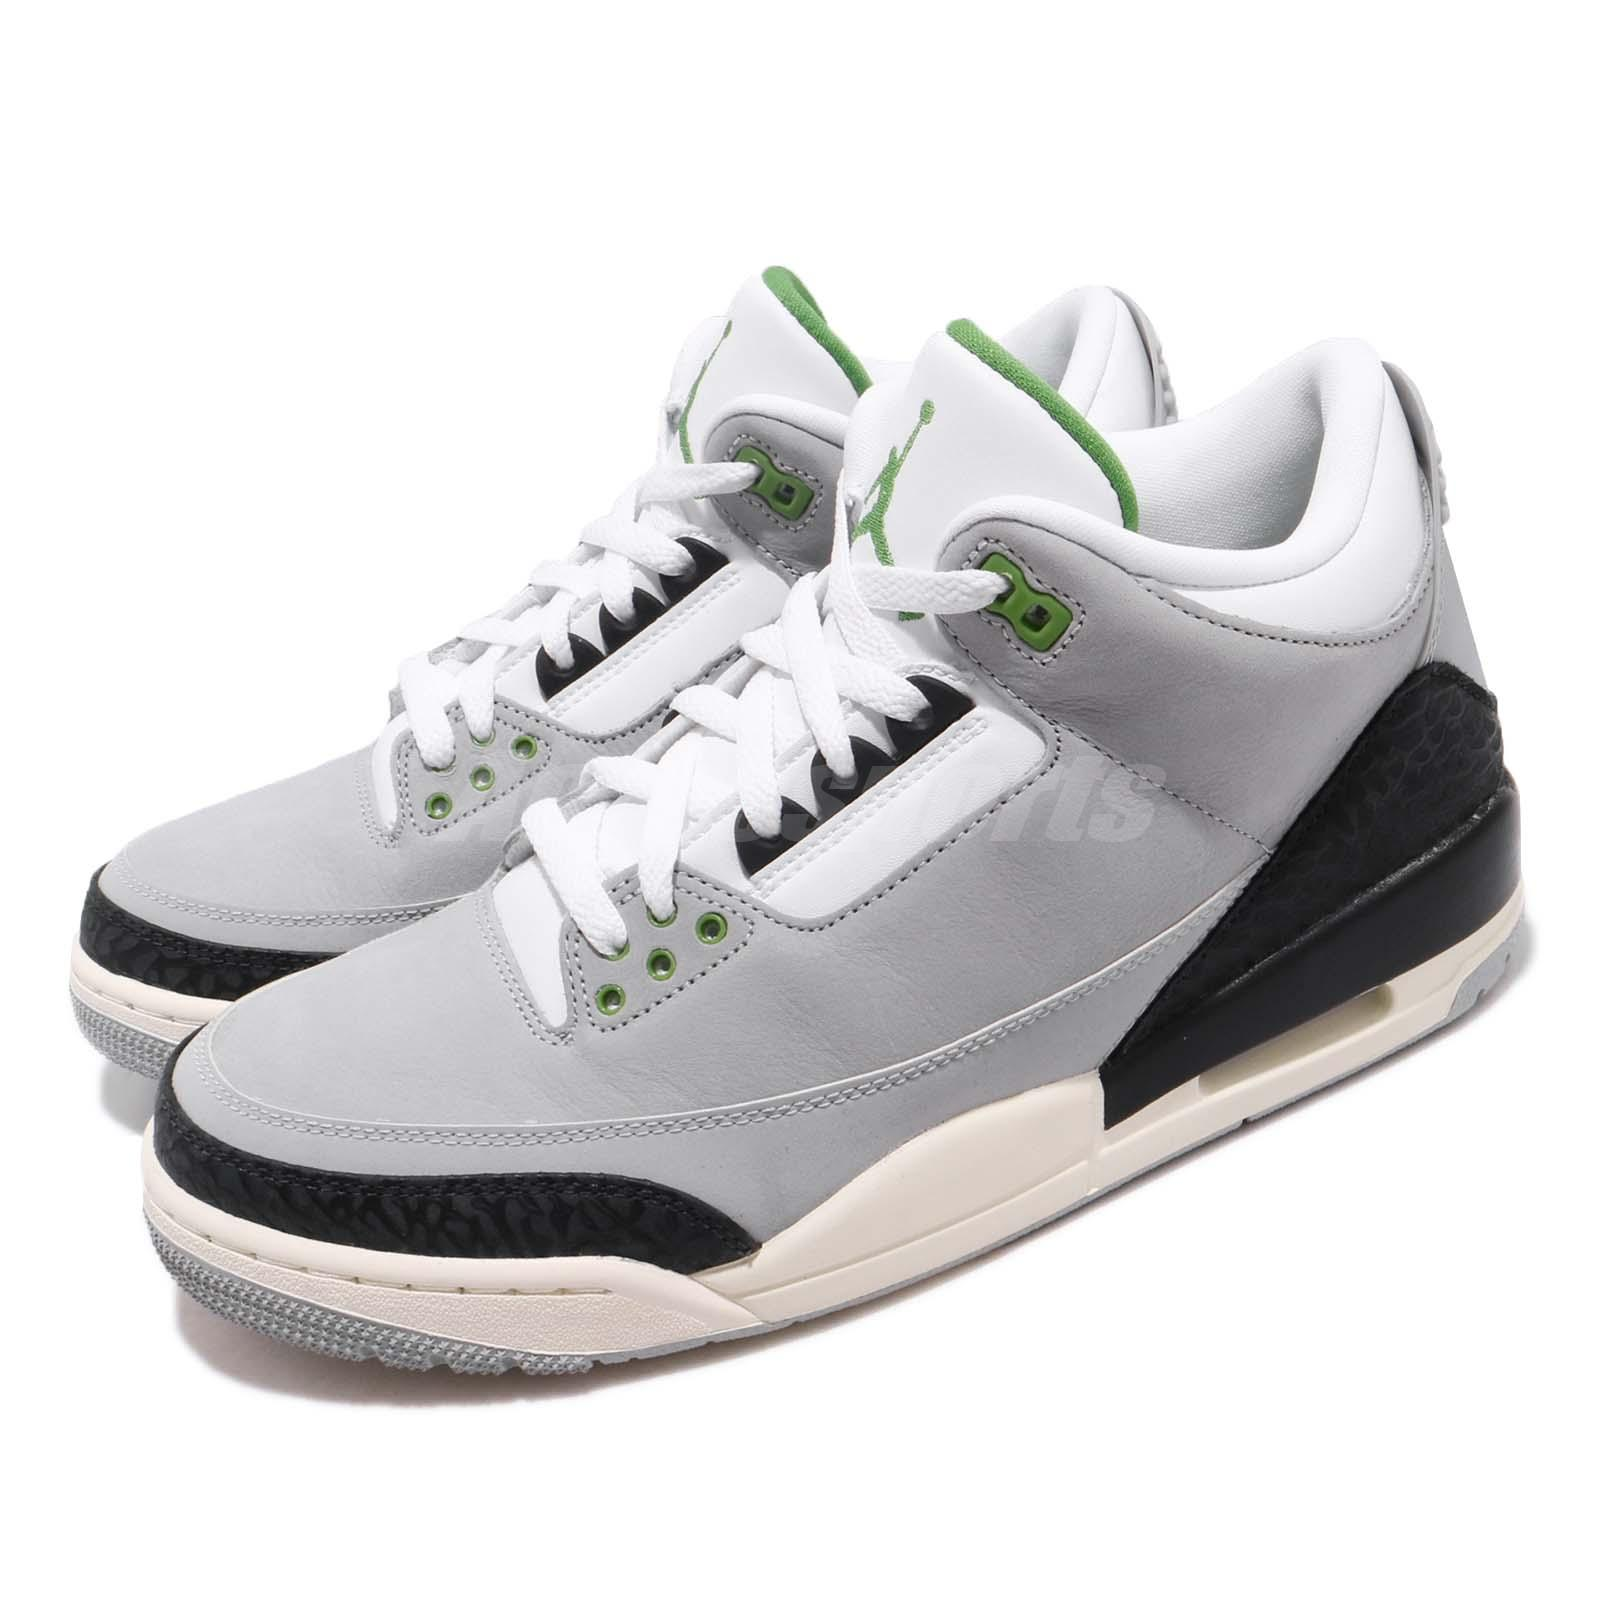 new style 53be6 b3558 Details about Nike Air Jordan 3 Retro Chlorophyll Tinker Smoke Grey Black  Green 136064-006